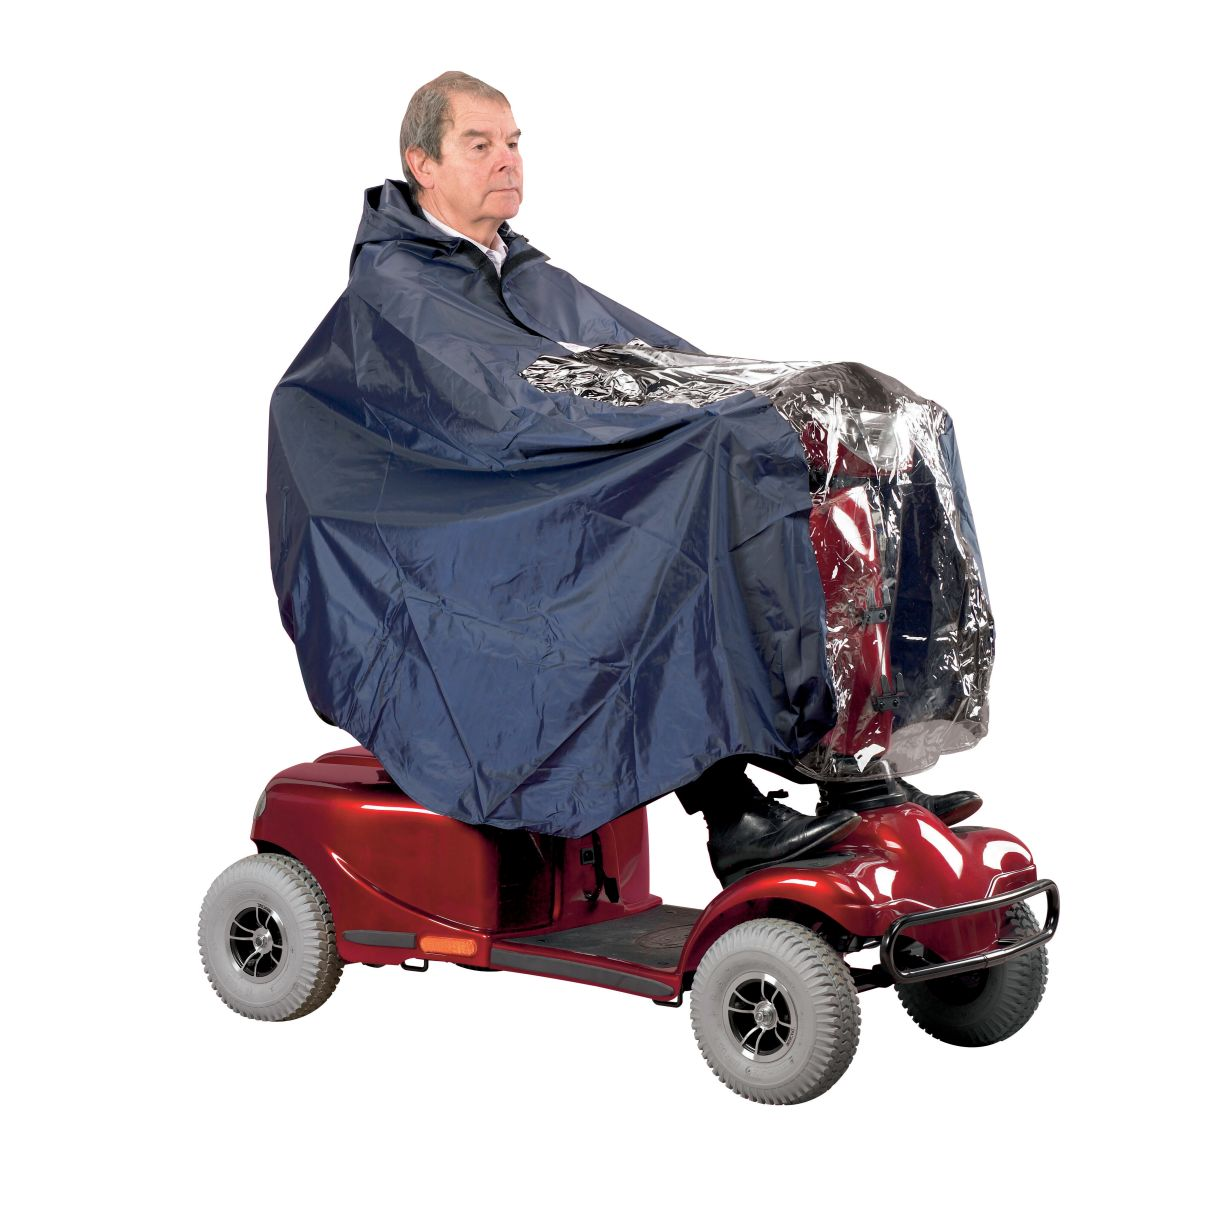 Scooter Clothing Cape Universal The Mobility Centre